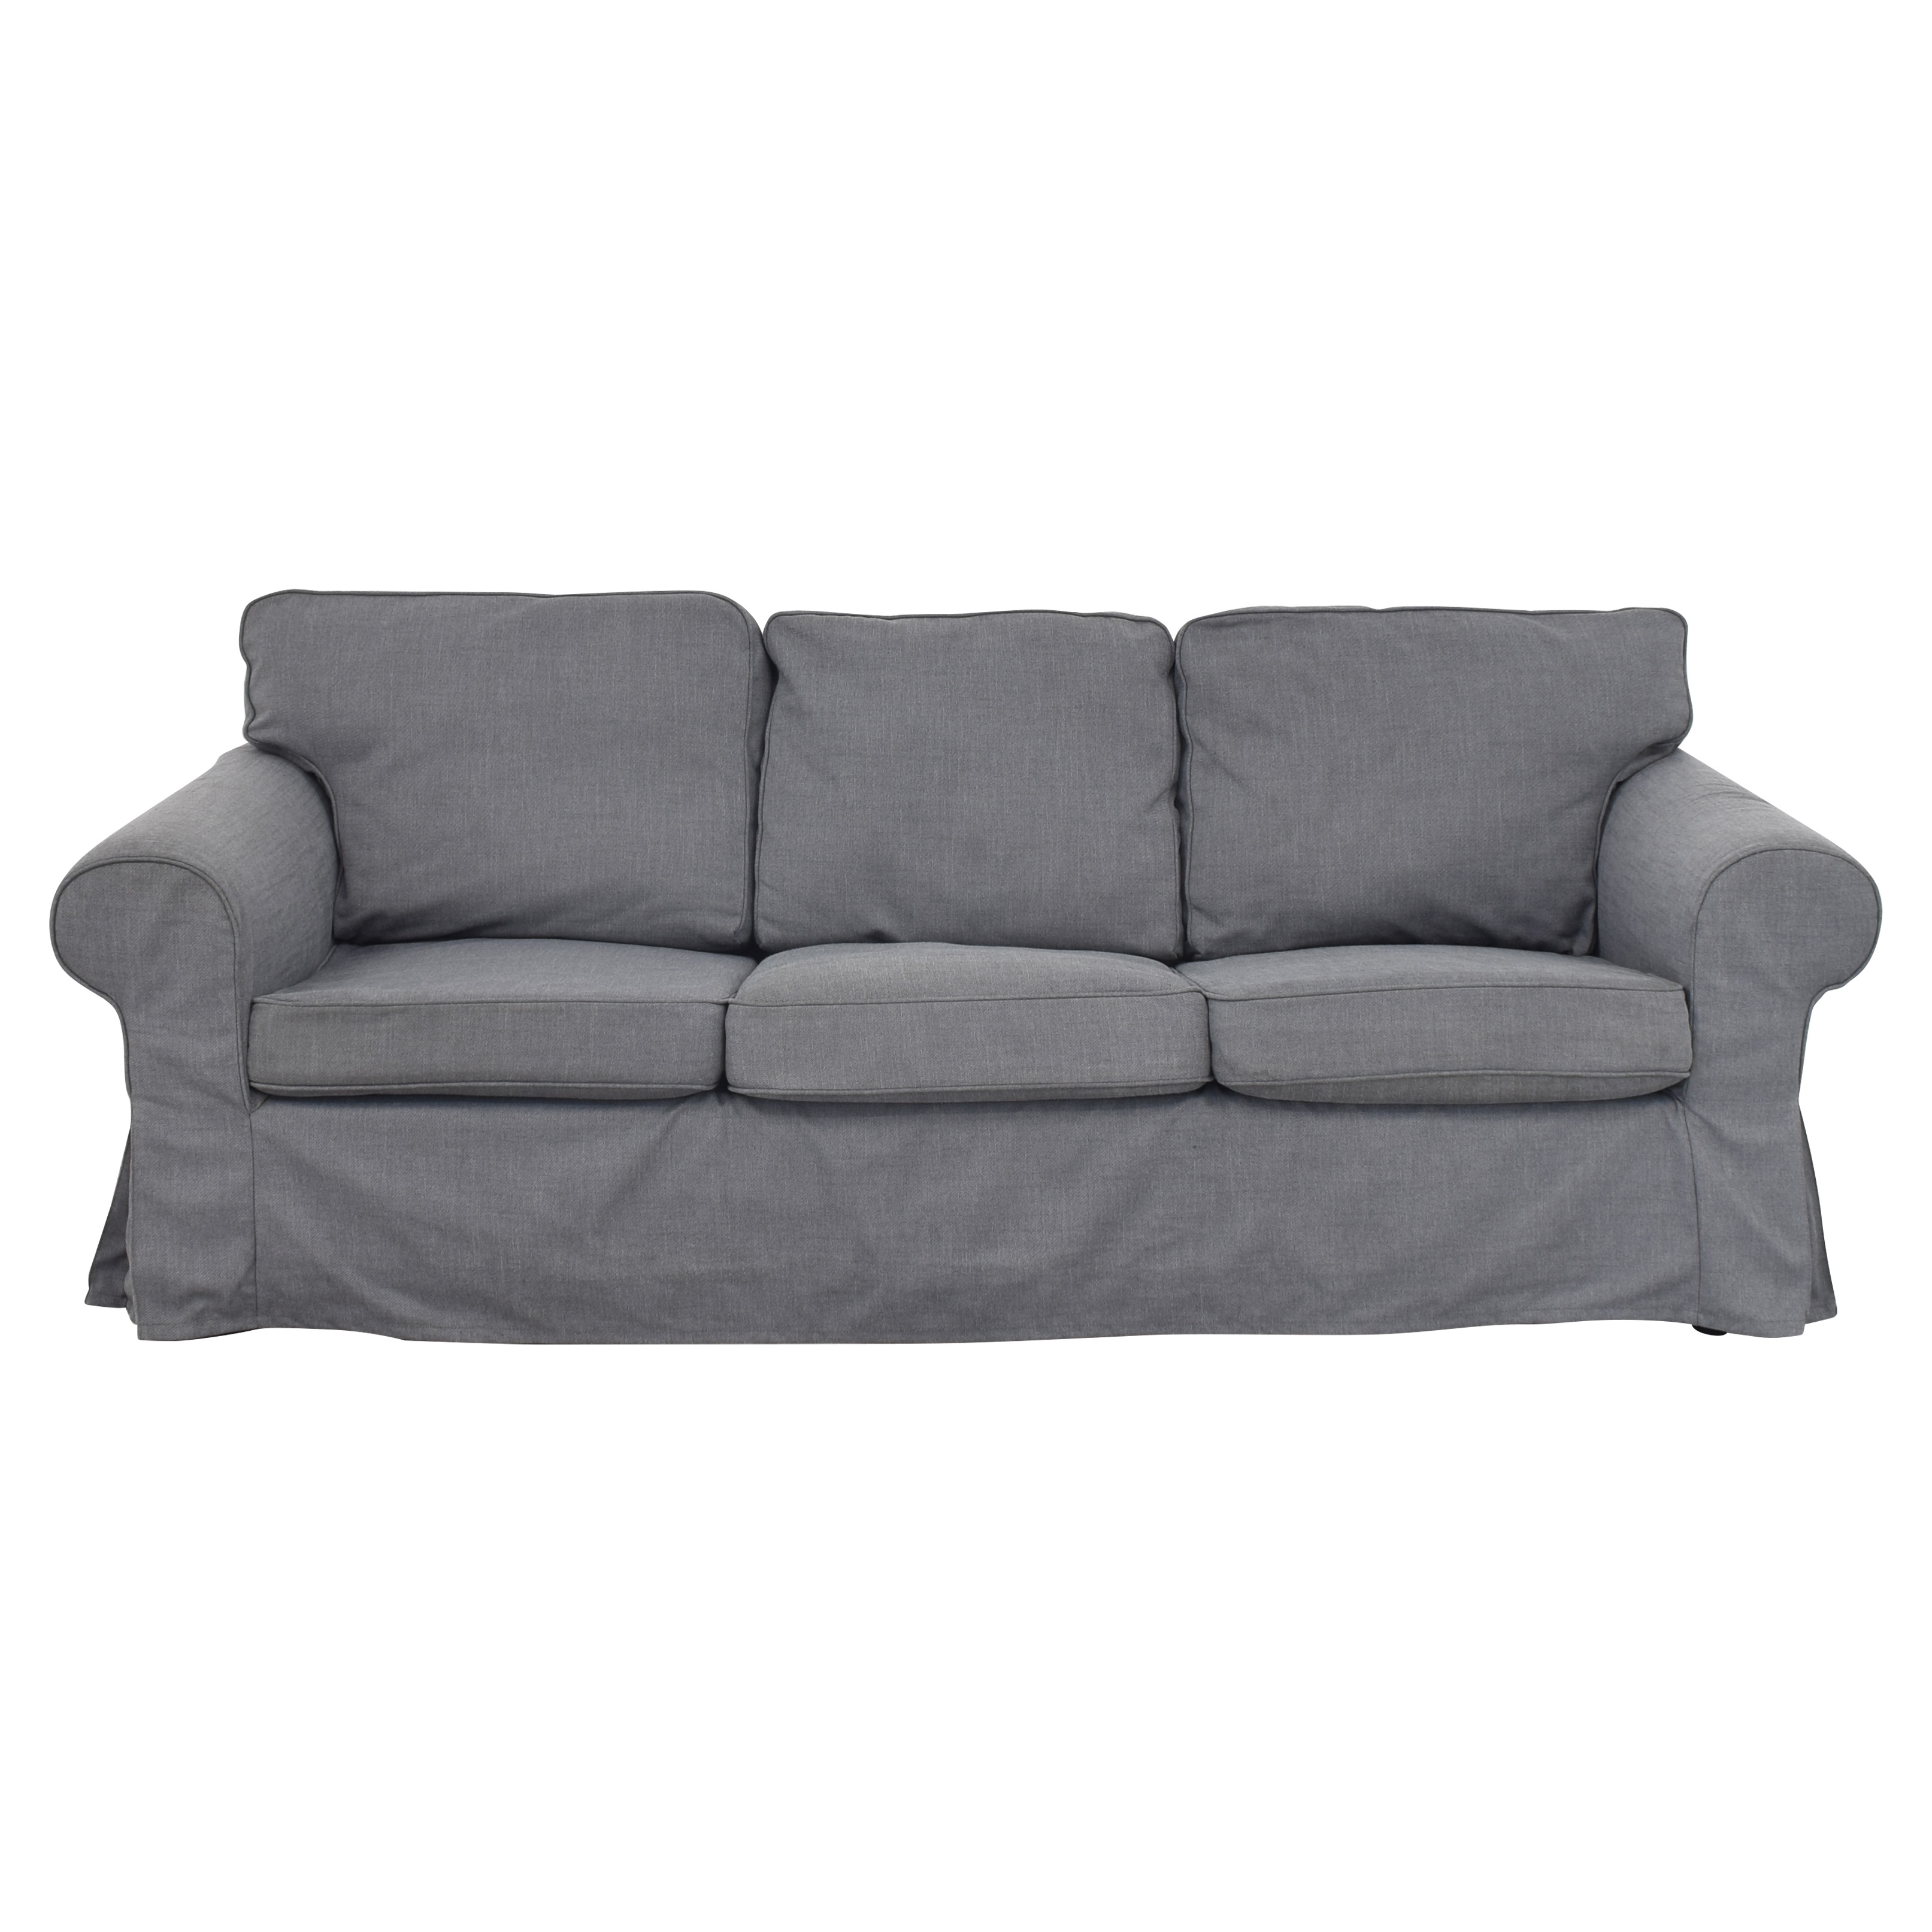 IKEA Ikea Ektorp Couch dimensions